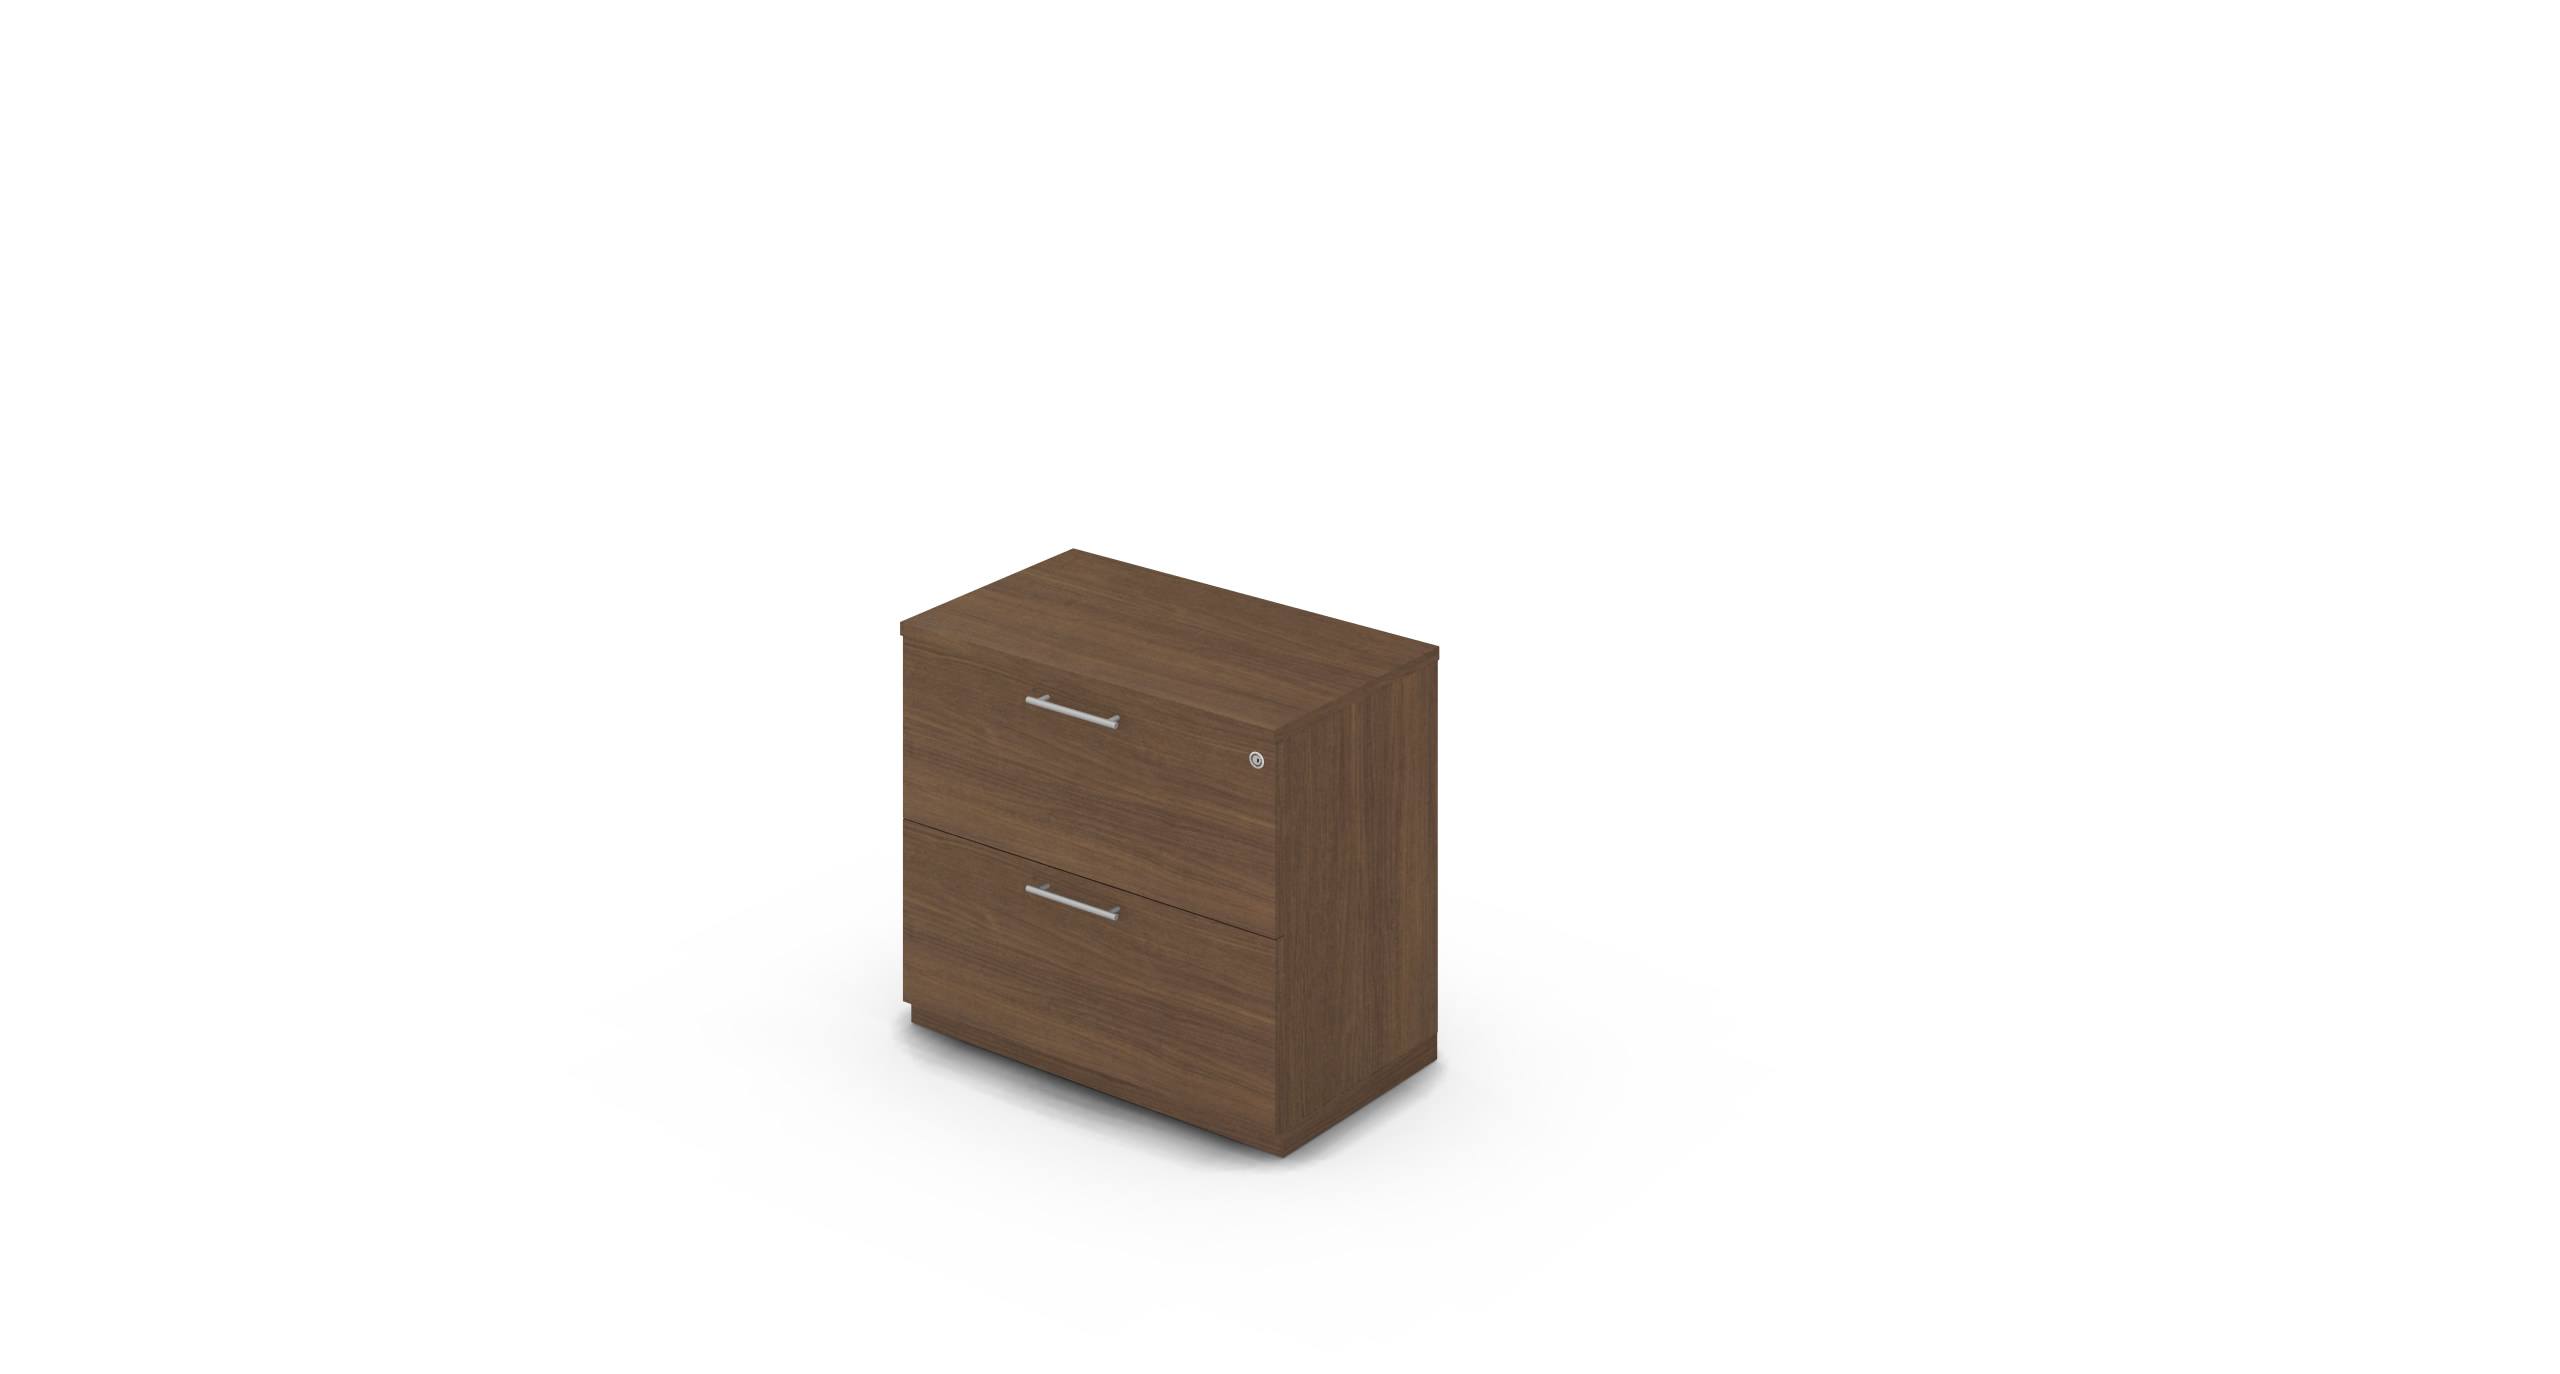 Cabinet_800x450x775_DR_Walnut_Bar_Round_WithCylinder